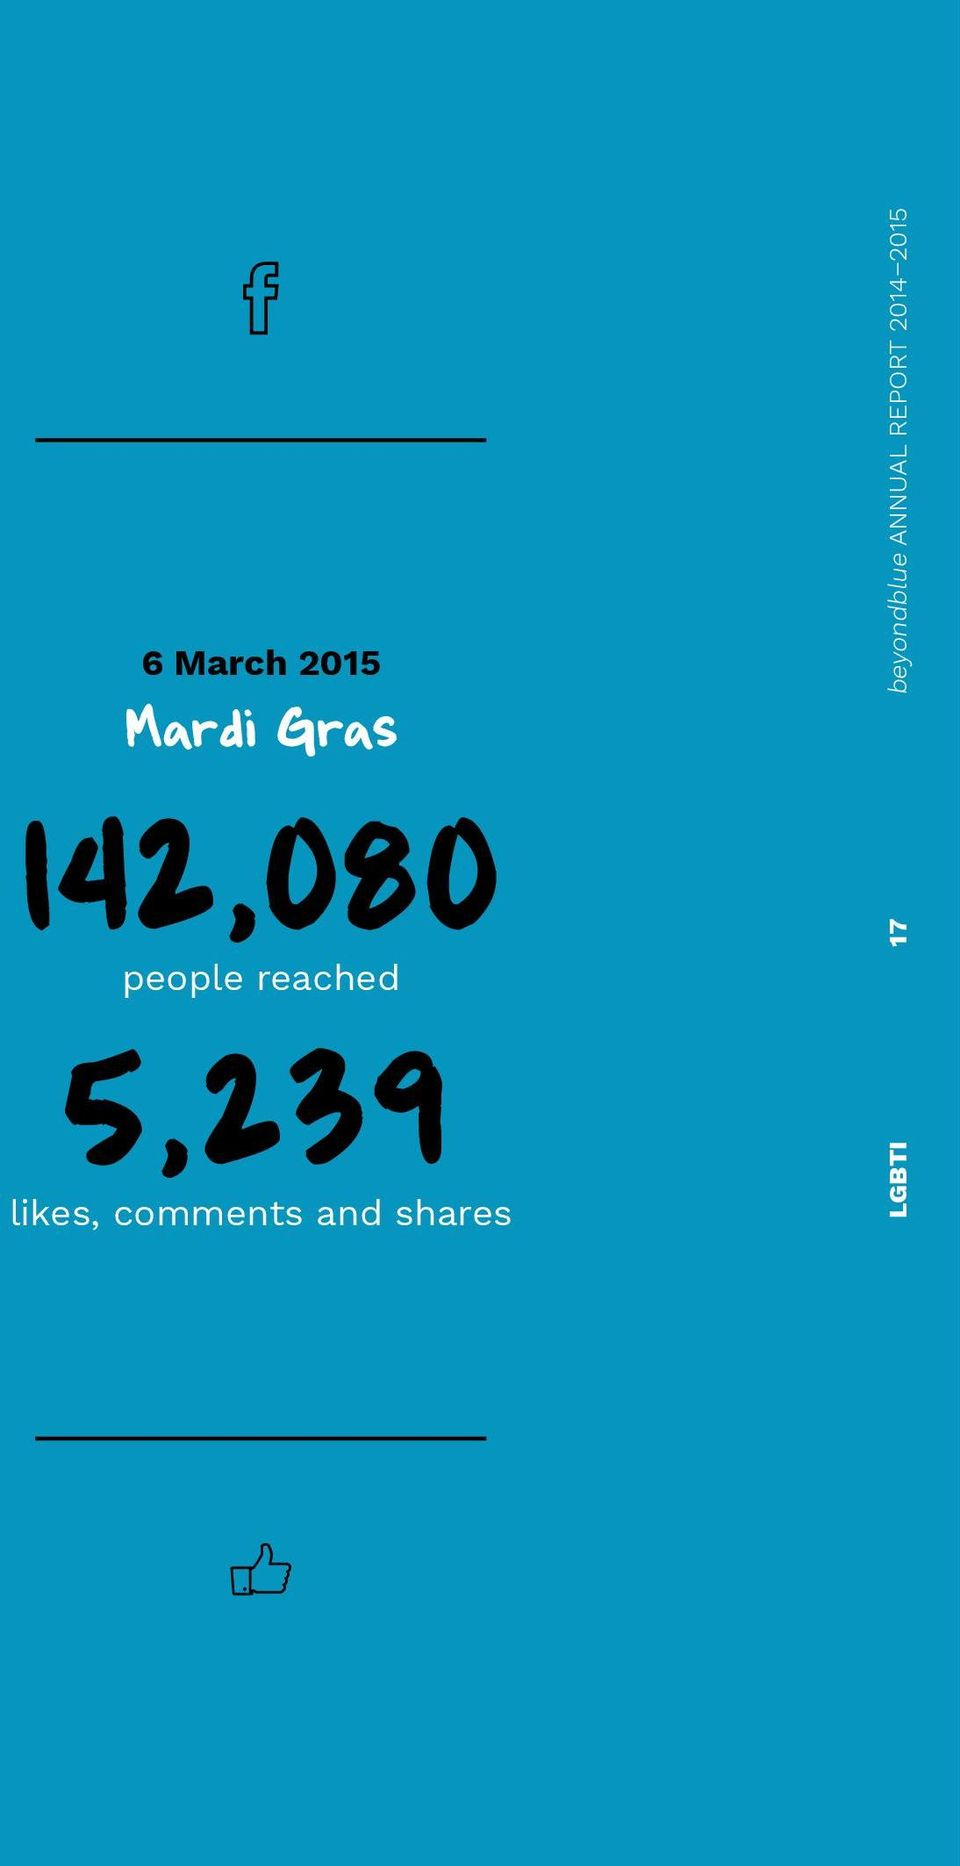 2015 142,080 people reached